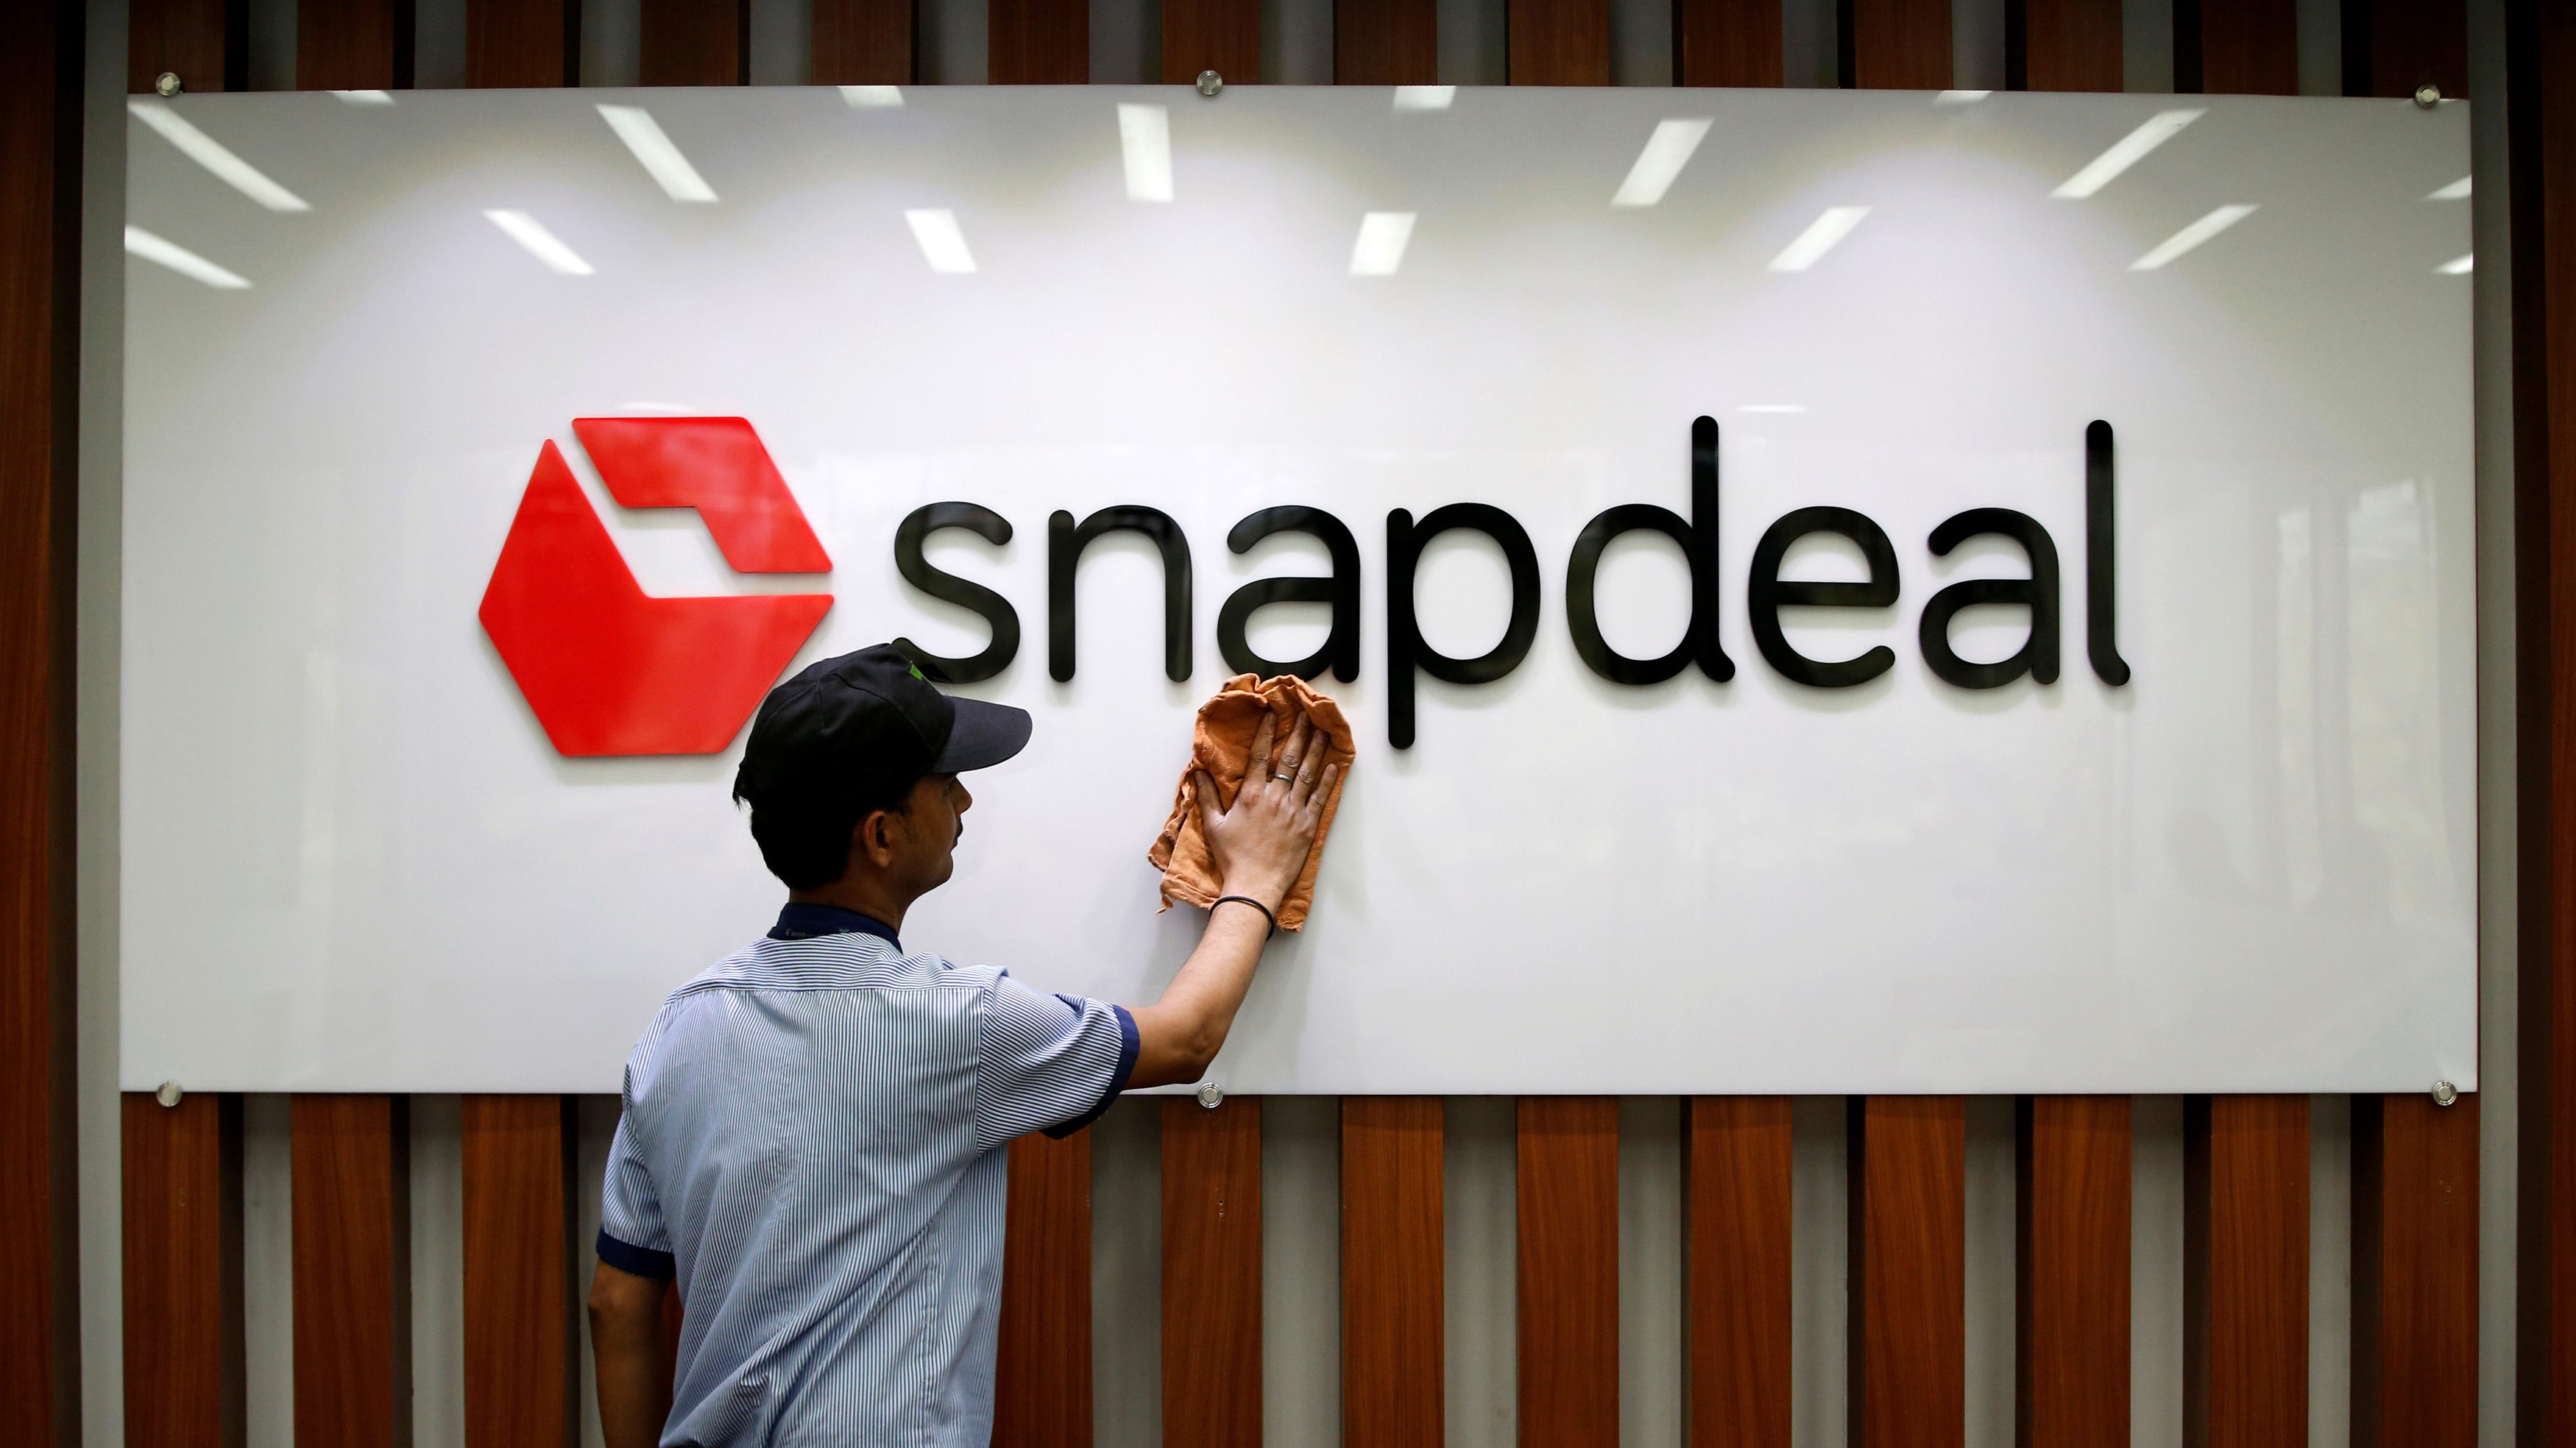 An employee cleans a Snapdeal logo at its headquarters in Gurugram on the outskirts of New Delhi, India, April 3, 2017.   Picture taken April 3. REUTERS/Adnan Abidi - RTX33YCE